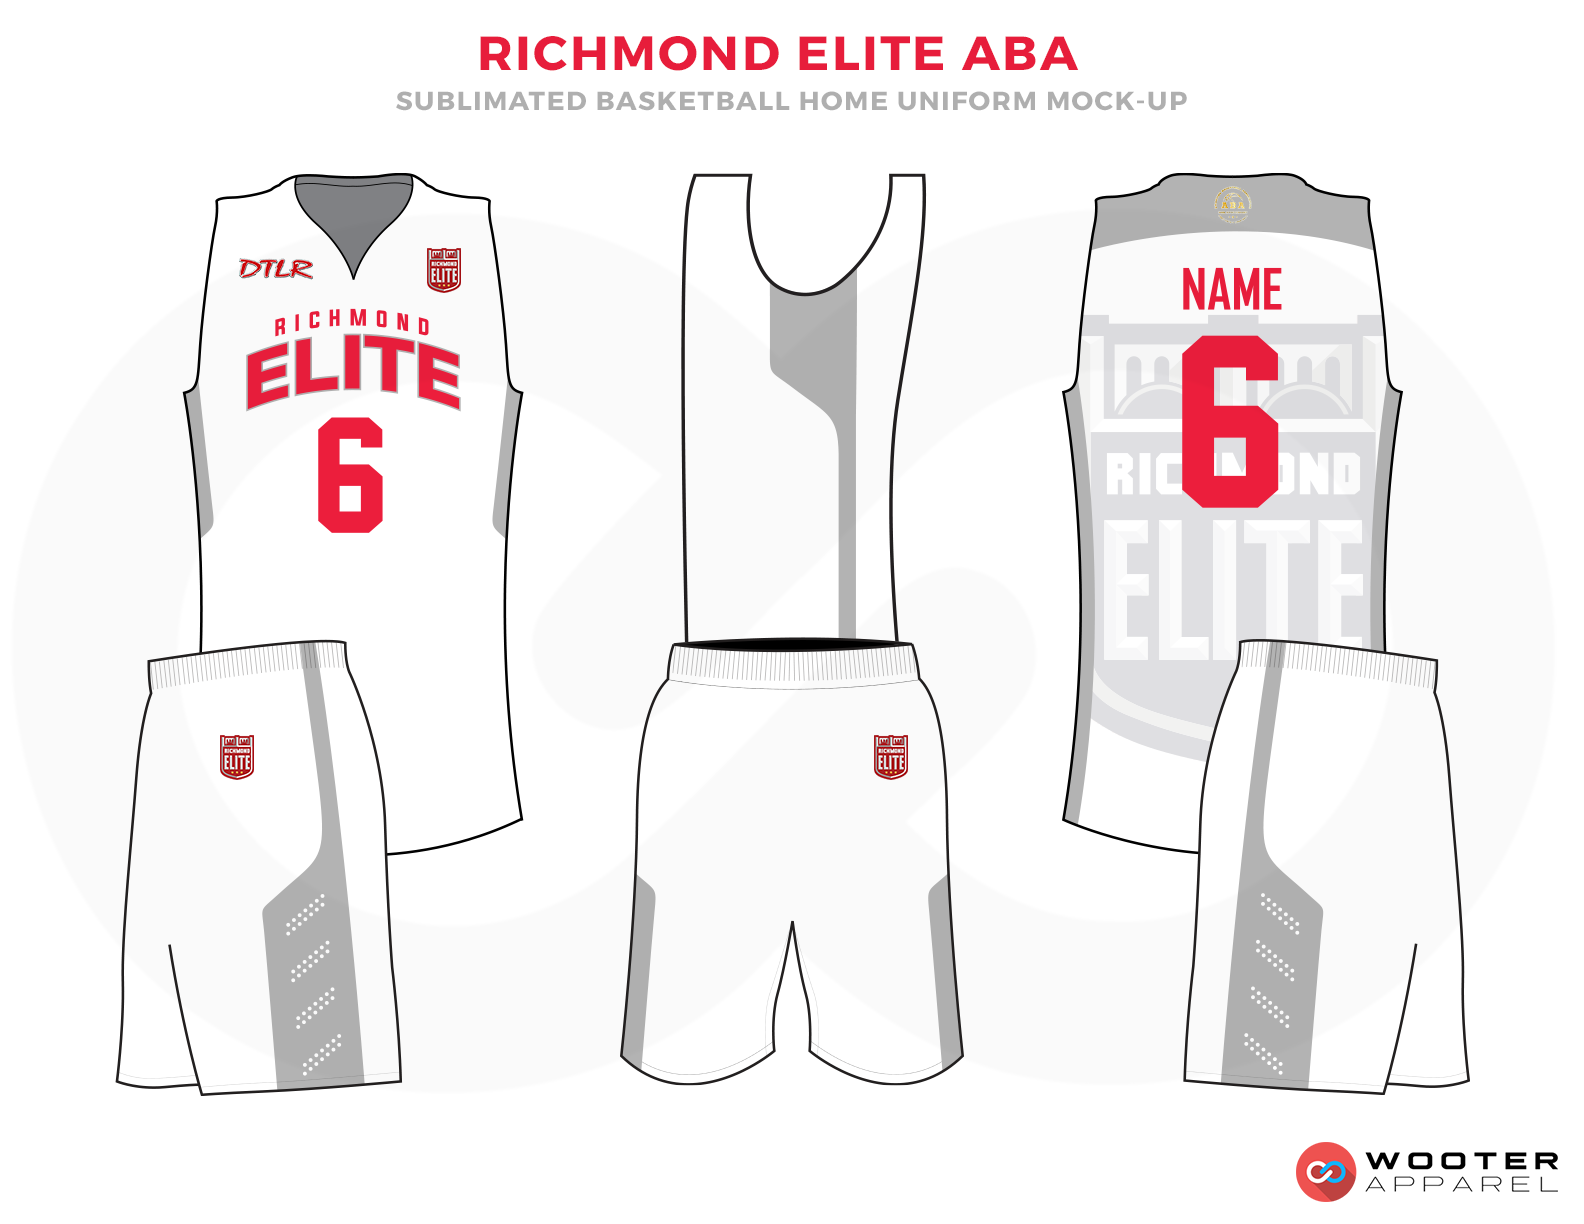 RICHMOND ELITE ABA White Grey and Red Basketball Uniforms, Jersey and Shorts